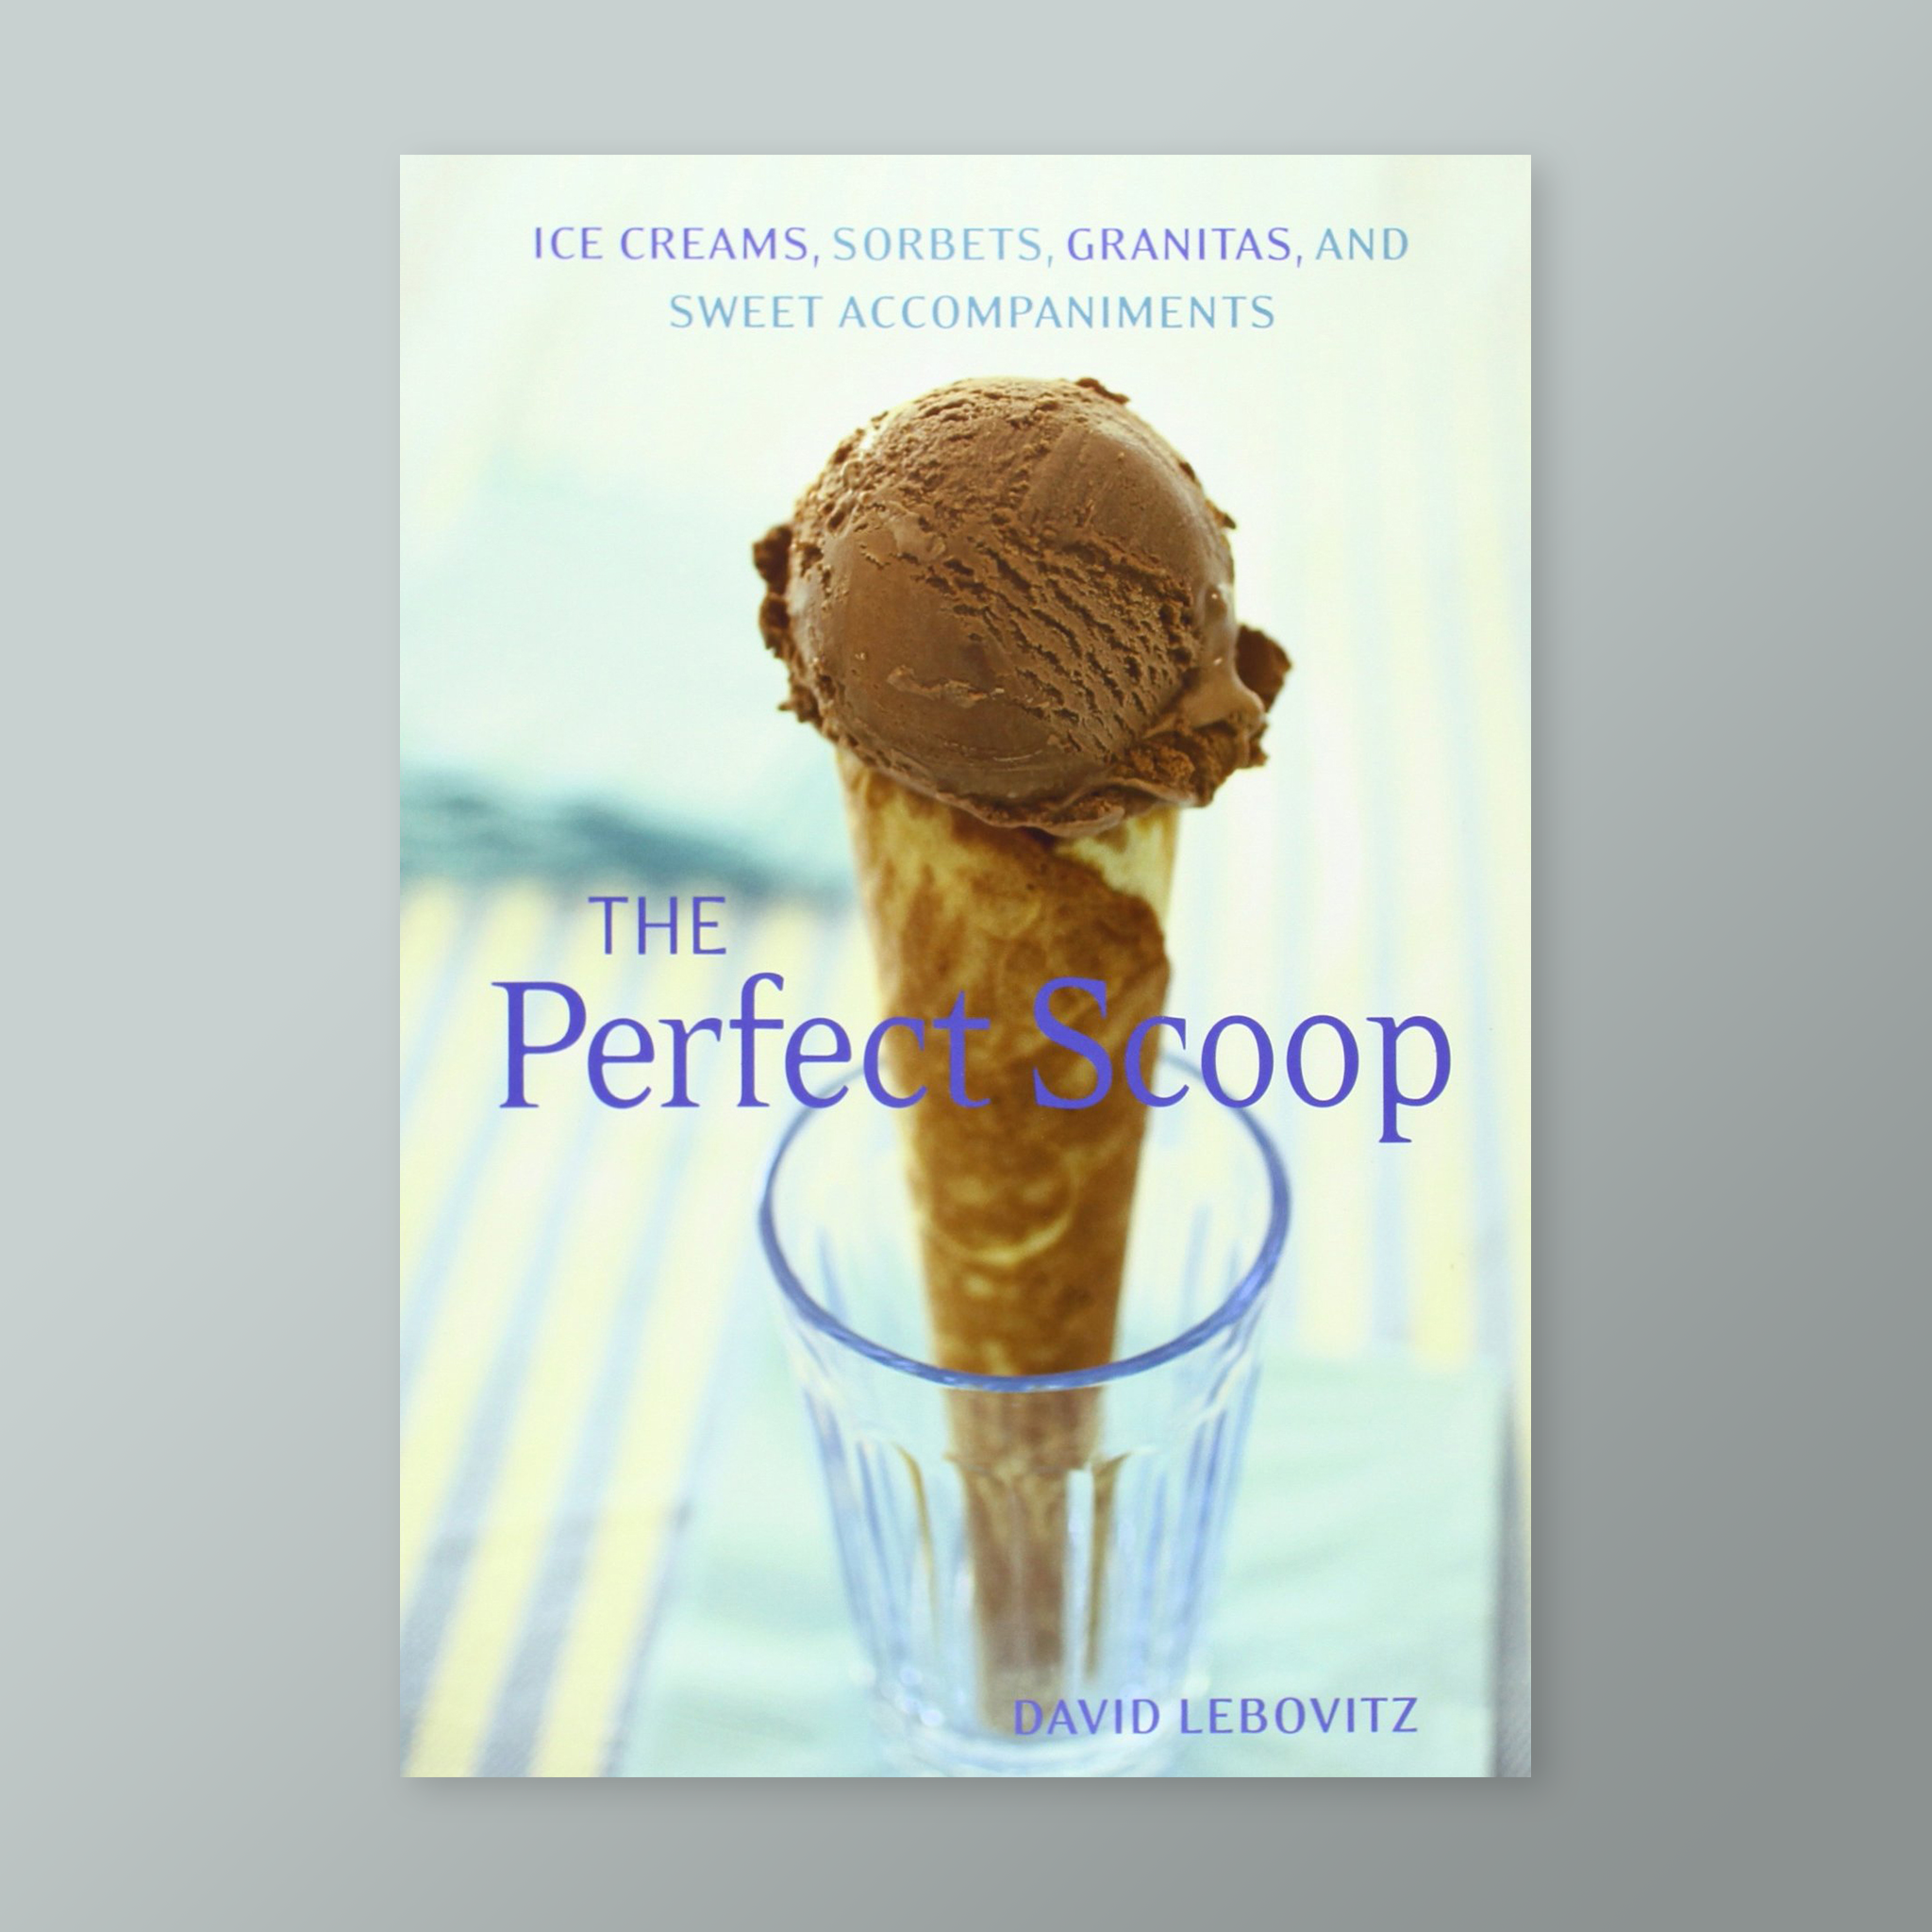 """""""The Vietnamese Coffee ice cream meant I didn't sleep well for a week but no regrets! Rock-solid recipes that just work with flavor combinations for the nostalgic and the more unusual tastes."""""""